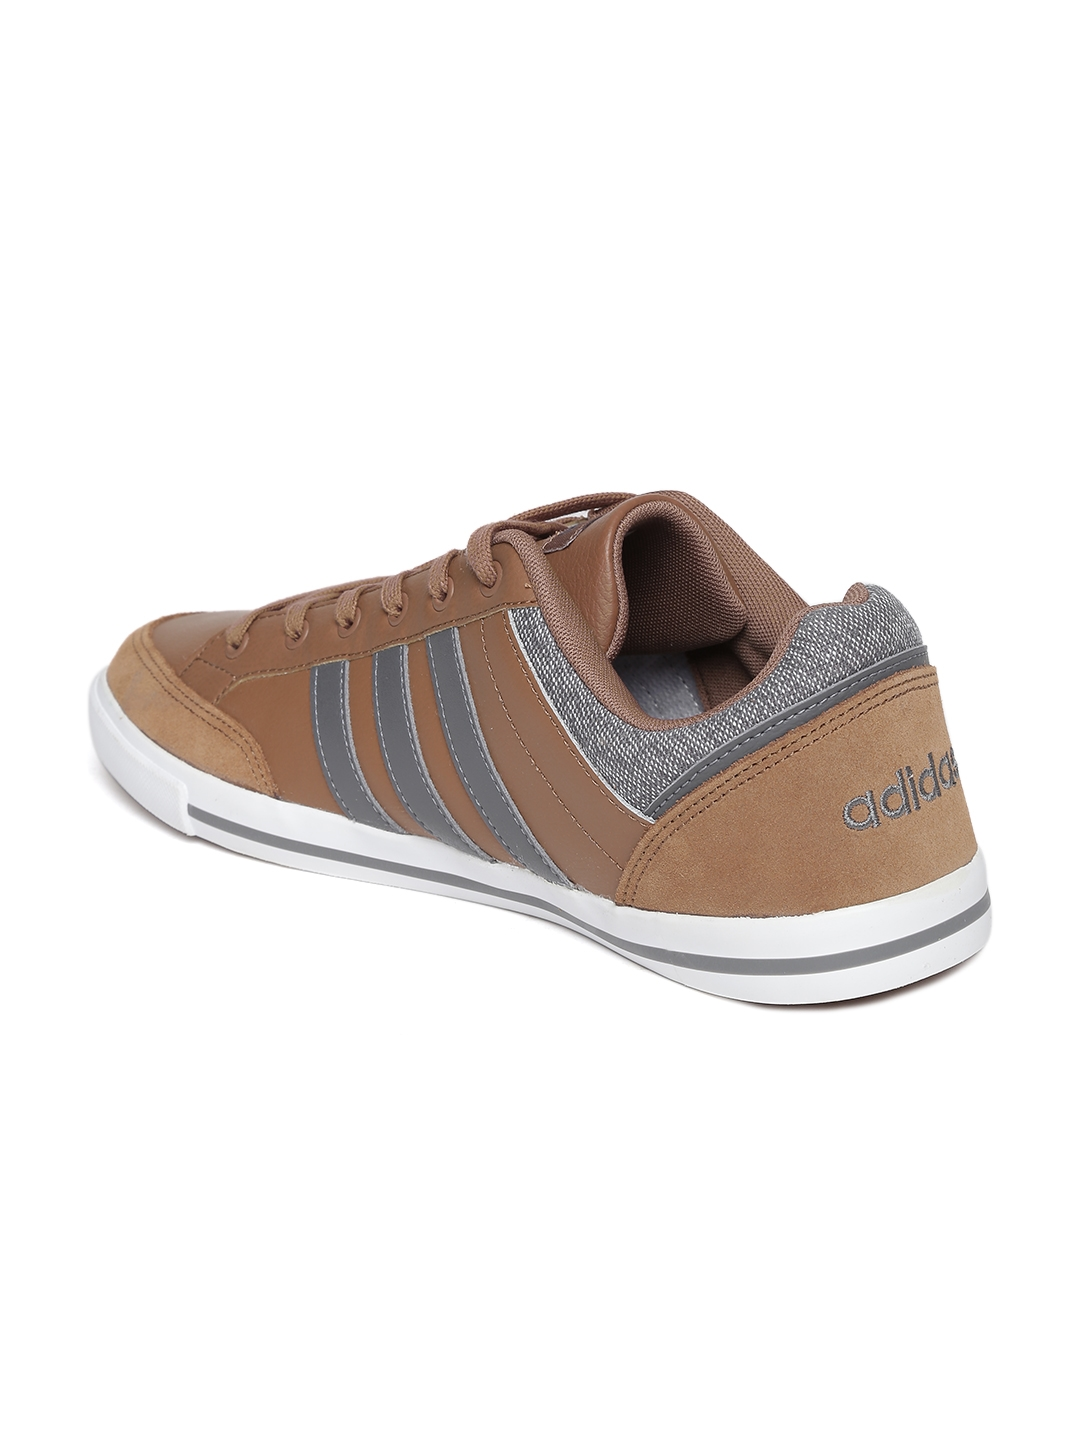 competitive price feda8 06d9f Adidas NEO Men Brown Cacity Leather Sneakers ...